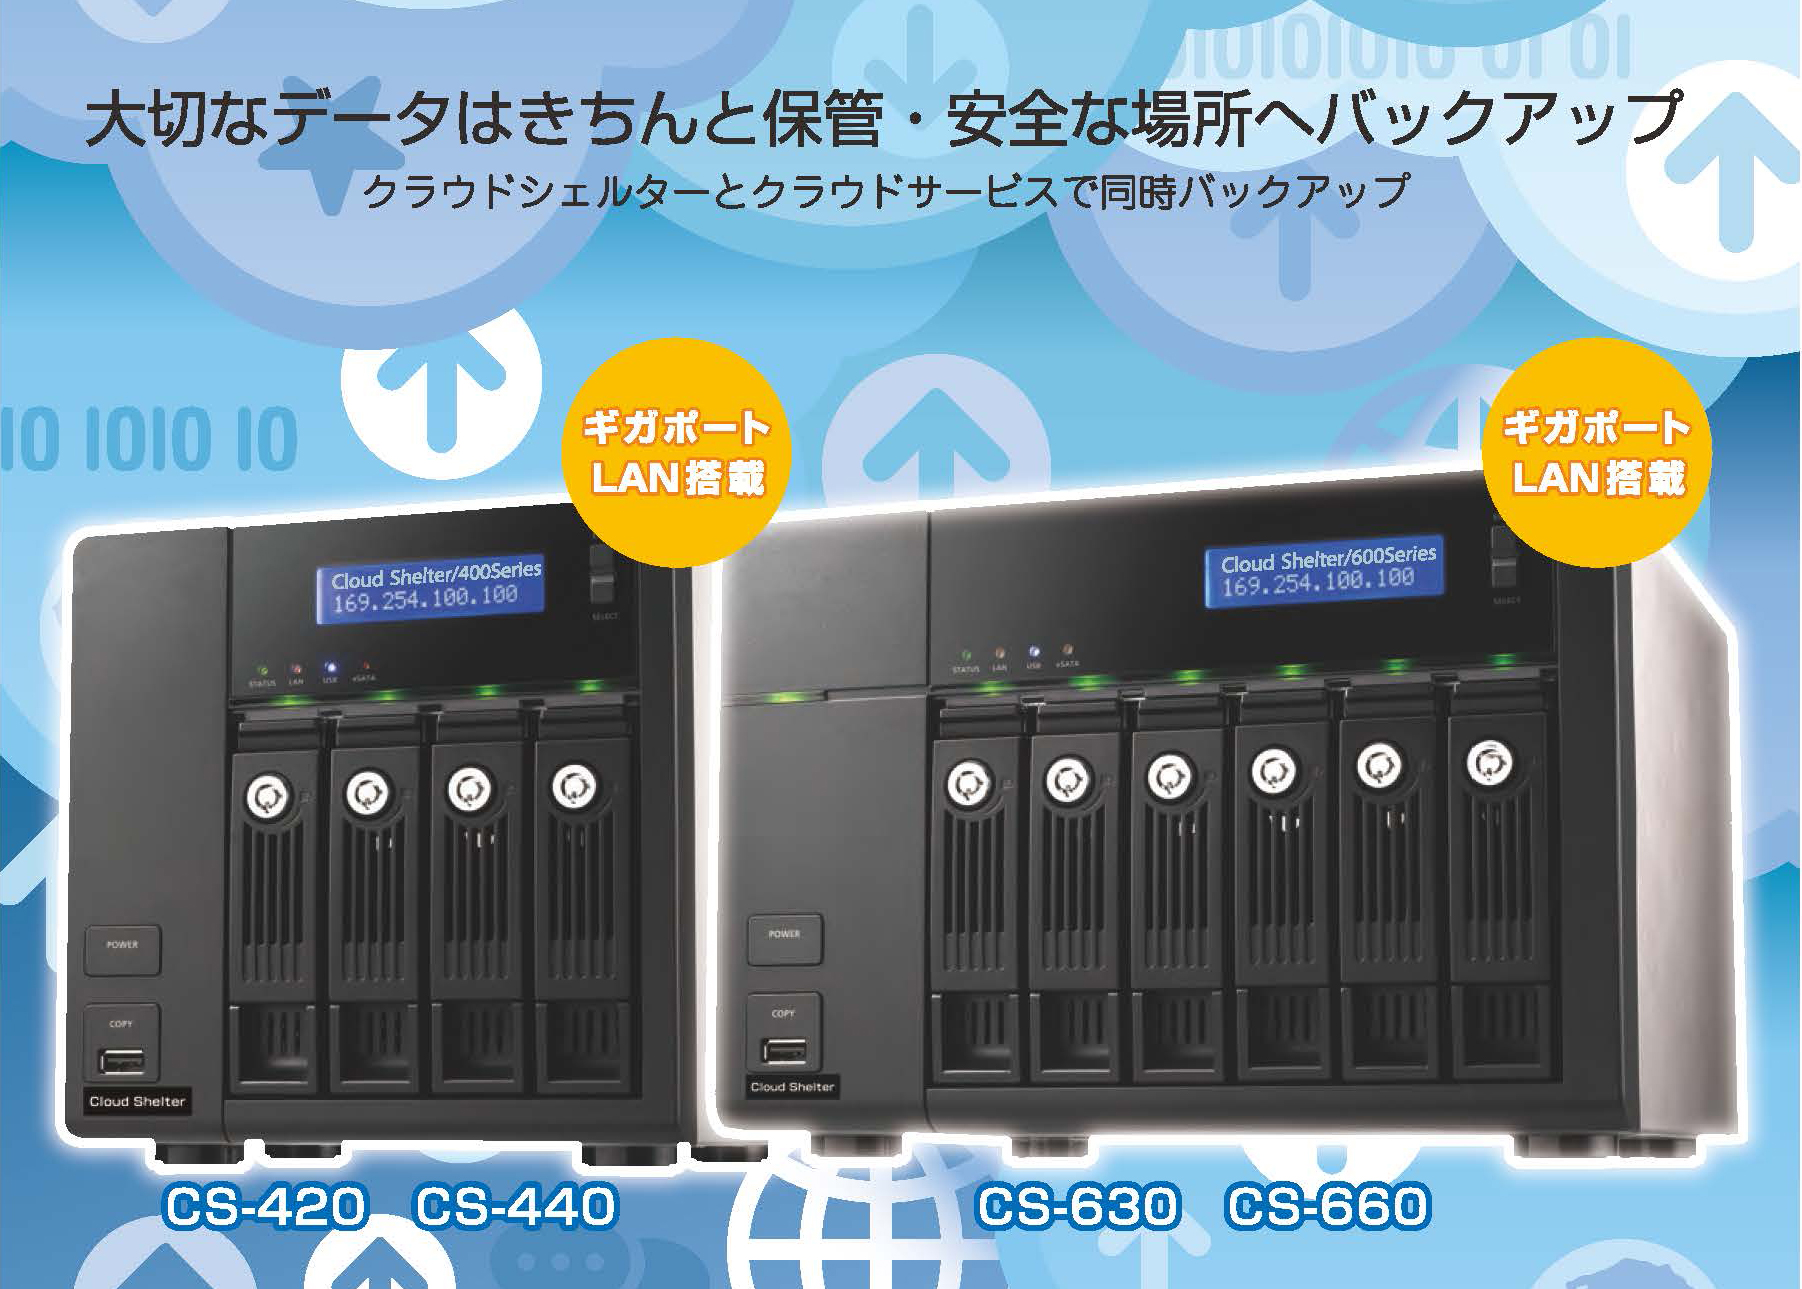 Restec Server RS5000i, RS5000iE